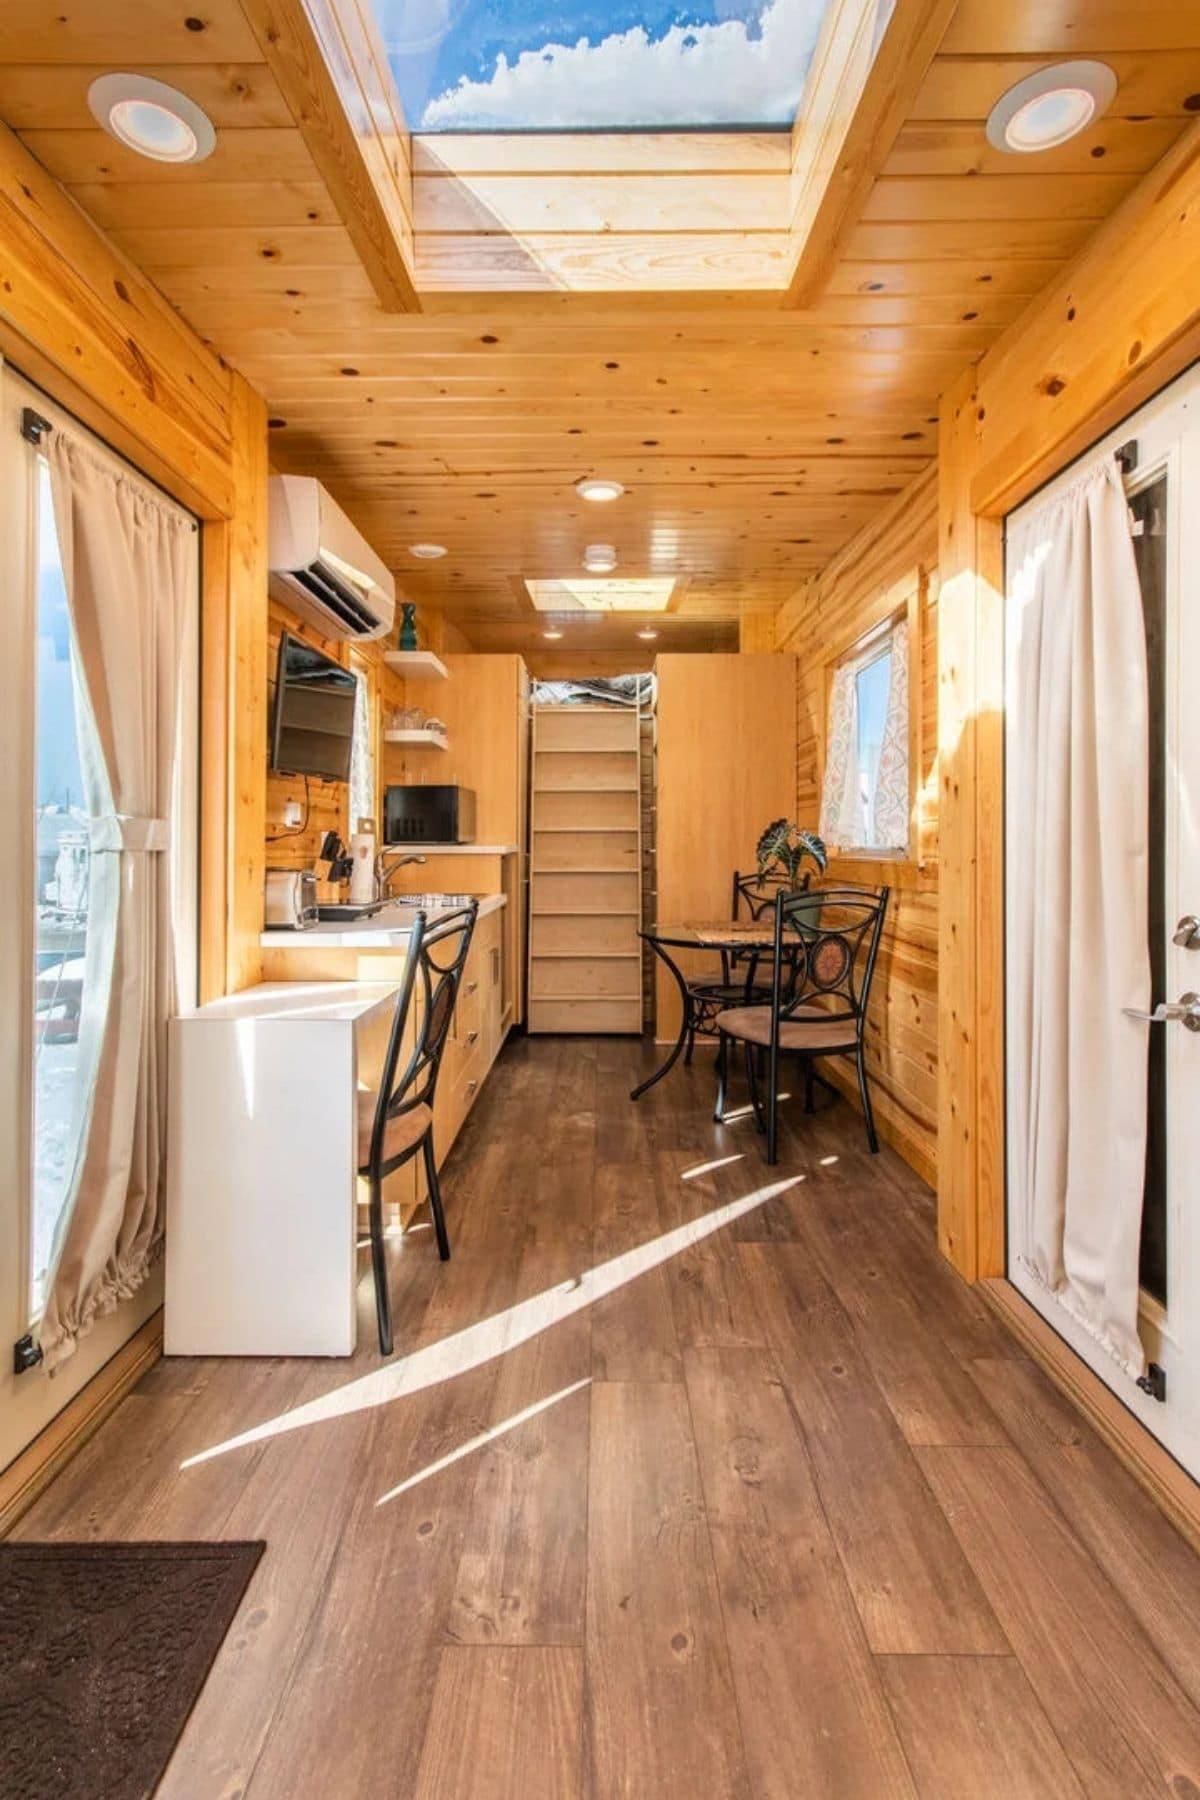 Natural wood walls in tiny home with kitchen on left